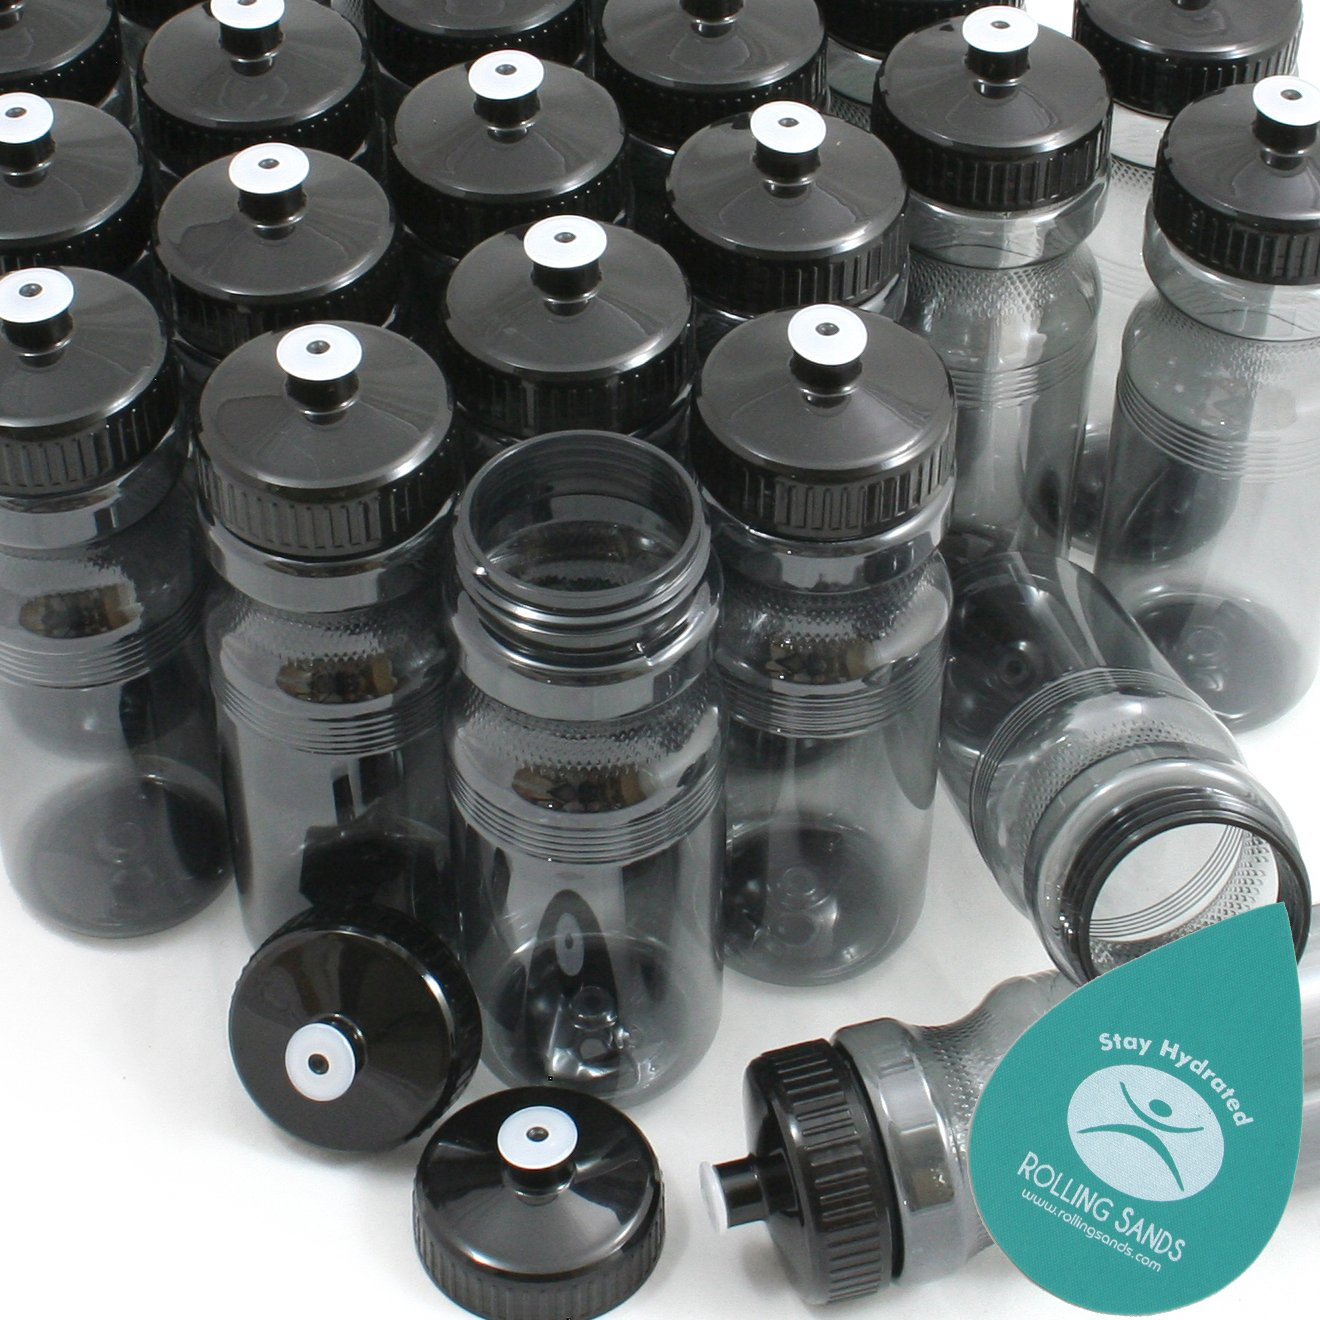 Made in USA Rolling Sands BPA-Free 24 Ounce Water Bottles Bulk 100 Pack